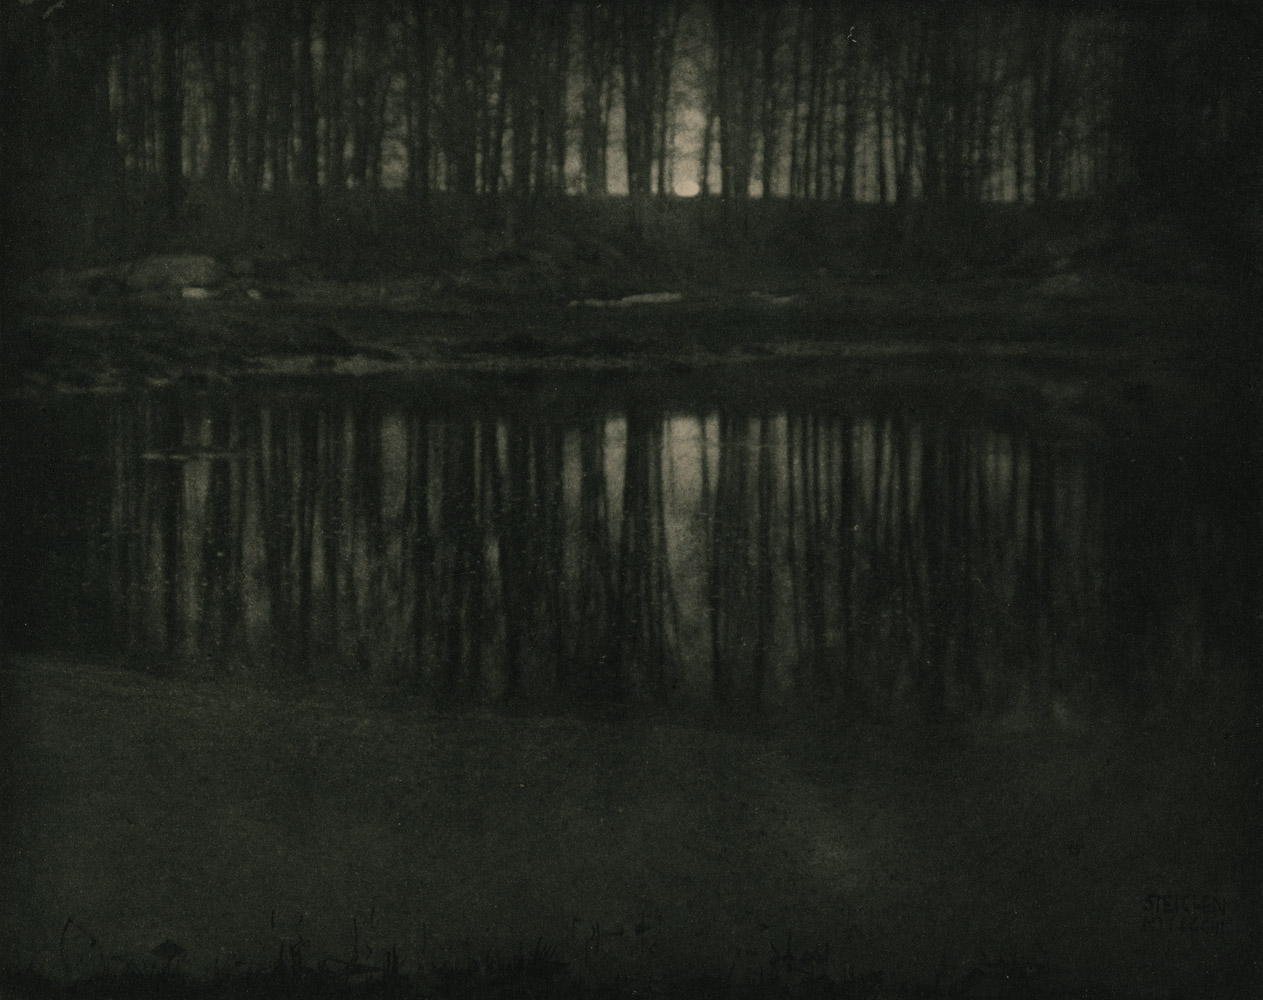 """Moonlight: The Pond,  1903. In the 1960s, the photographer began destroying all the negatives to work he deemed  rejects.  The seminal image above was not likely one of them.  """"He tried burning them and burying them in the swamp. Finally, by the time I arrived,"""" his wife Joanna Steichen writes, """"they were being tied up in bundles, taken out to the middle of the pond and dumped; the water washed away the emulsion."""""""